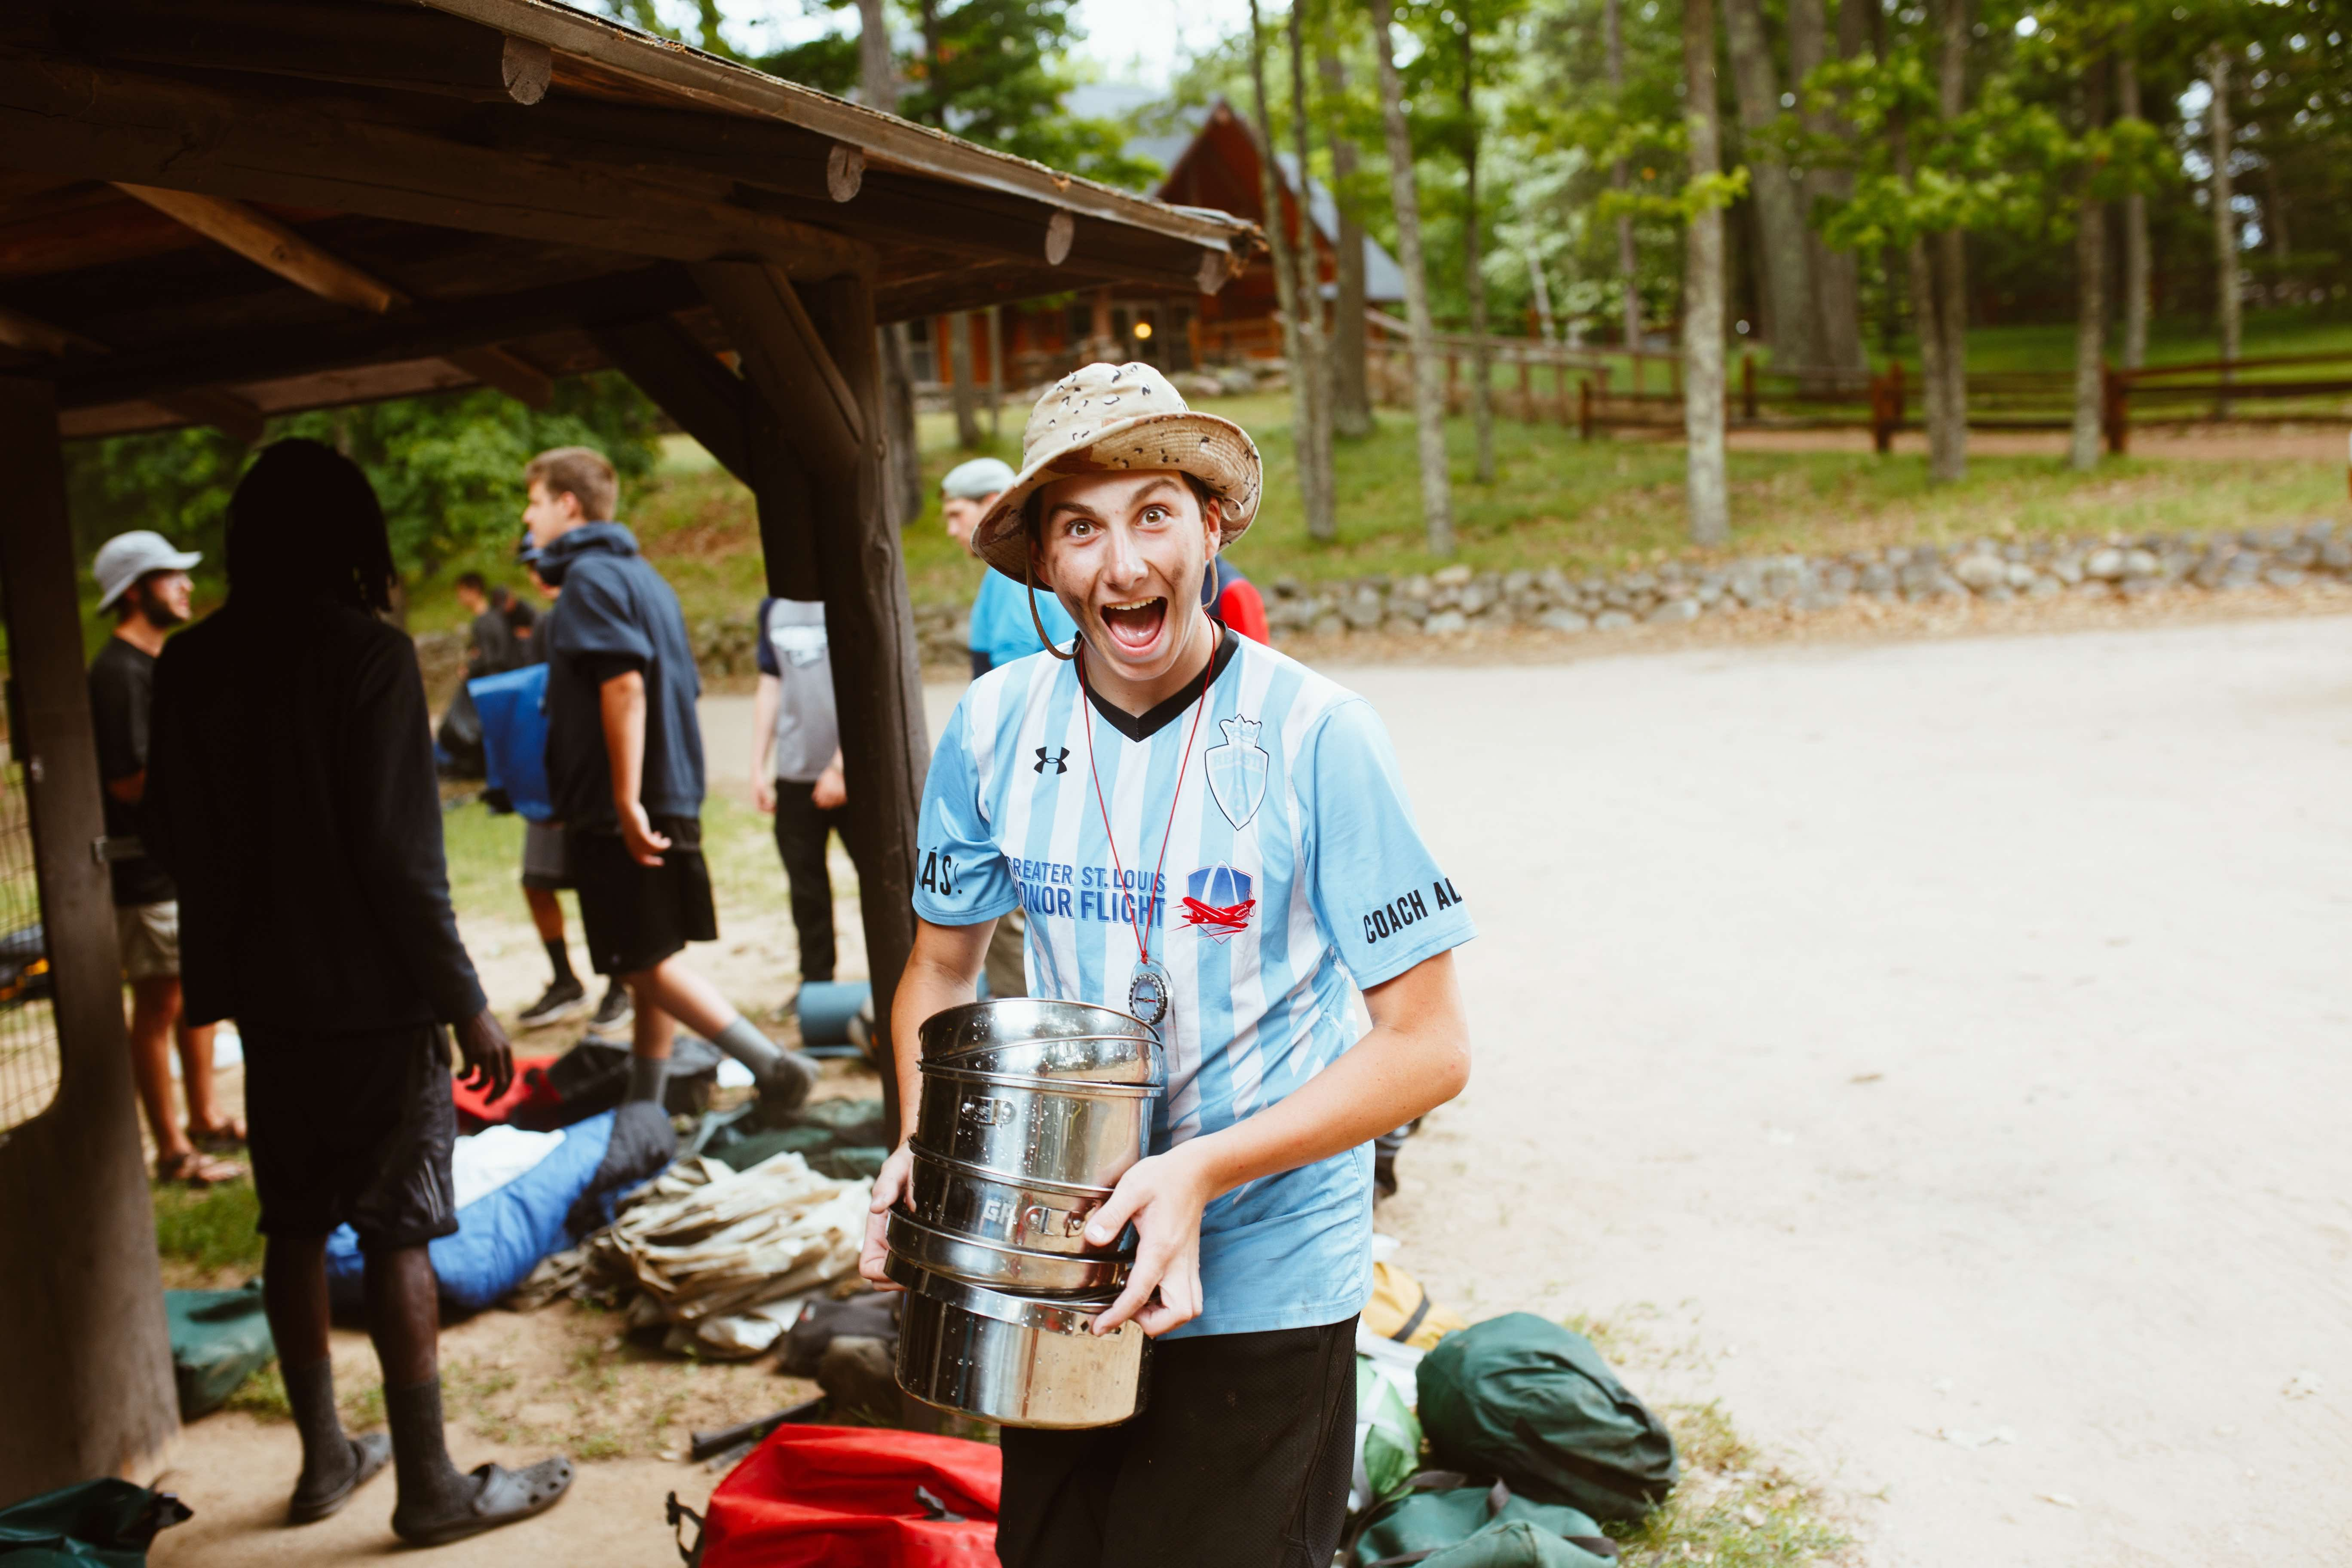 Campers haven't completed their trip until all of their equipment is cleaned and returned to the trip locker.